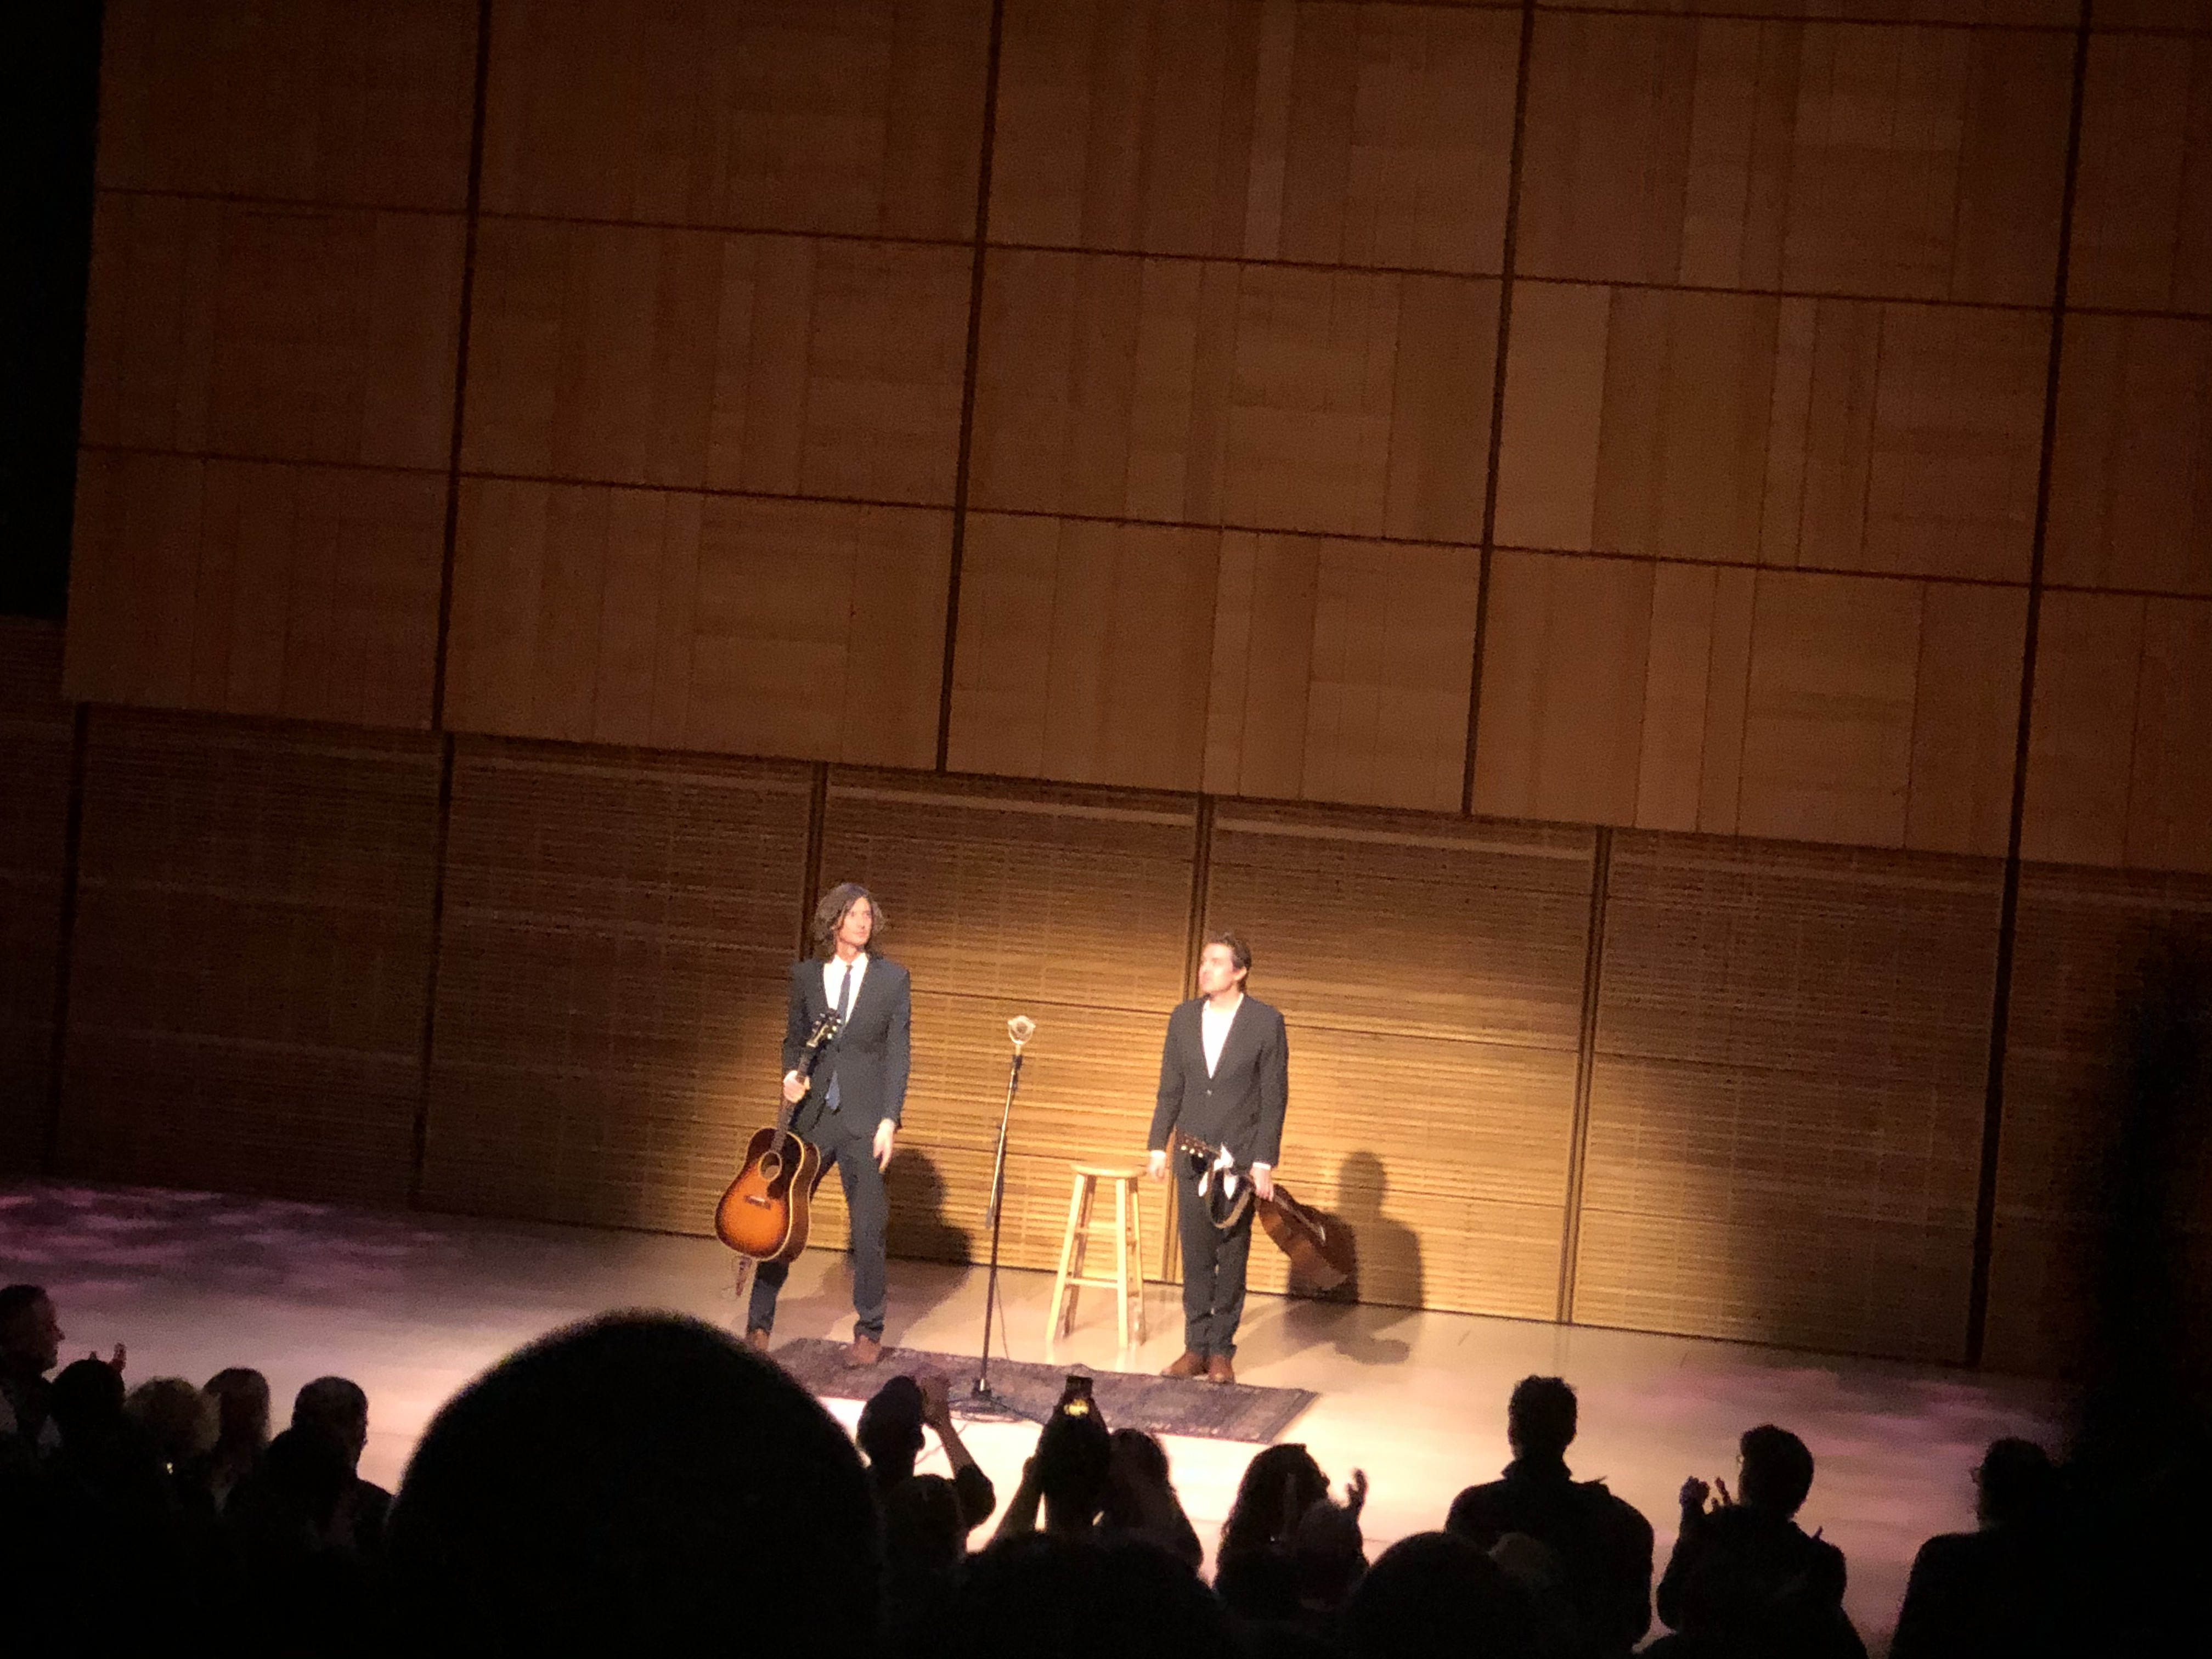 The Milk Carton Kids (Joey Ryan and Kenneth Pattengale), November 1st, 2019